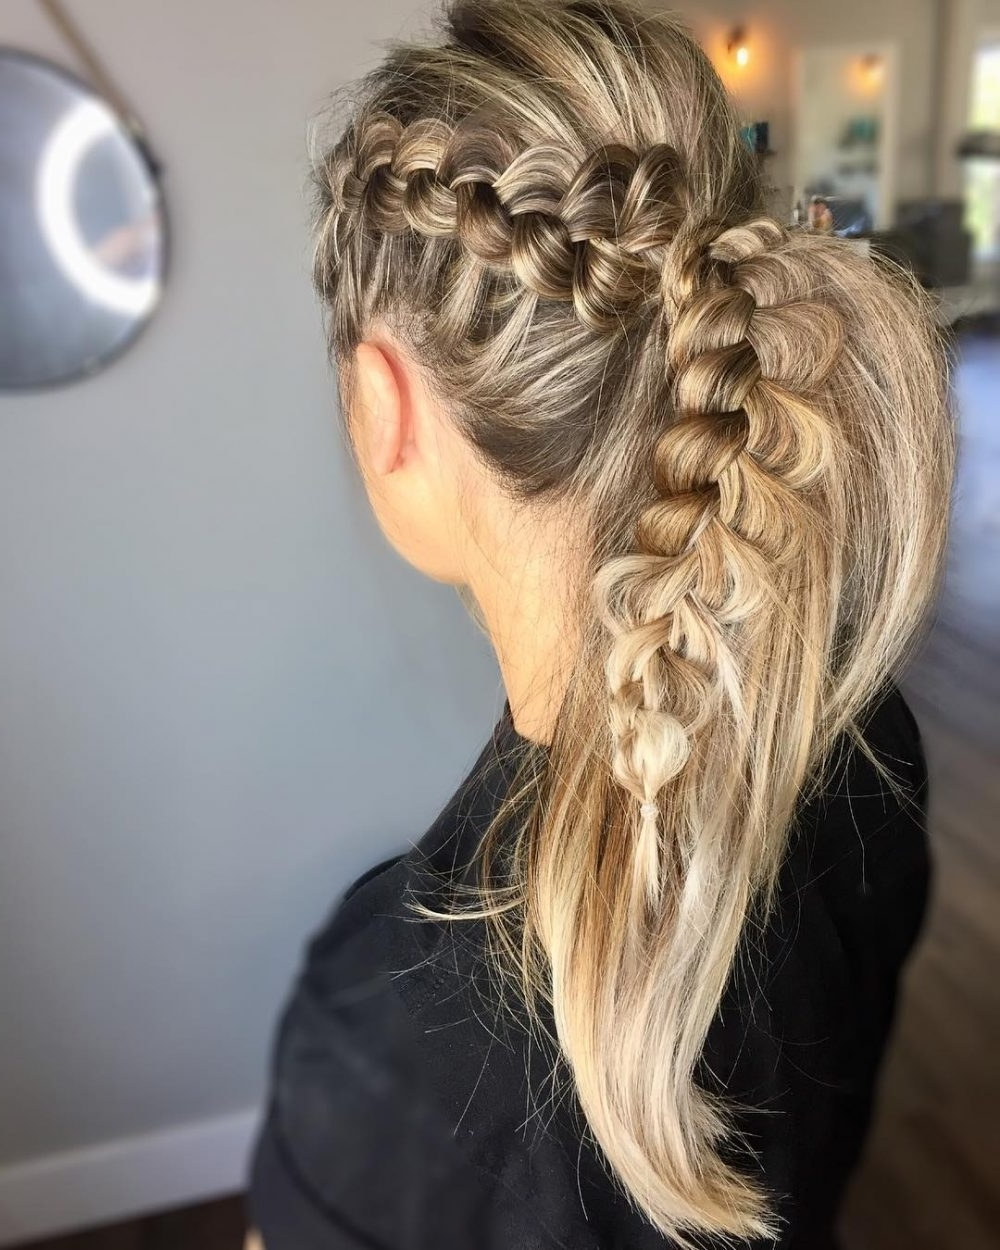 38 Ridiculously Cute Hairstyles For Long Hair (popular In 2018) With Regard To Fashionable Ponytail Hairstyles With A Braided Element (View 16 of 20)